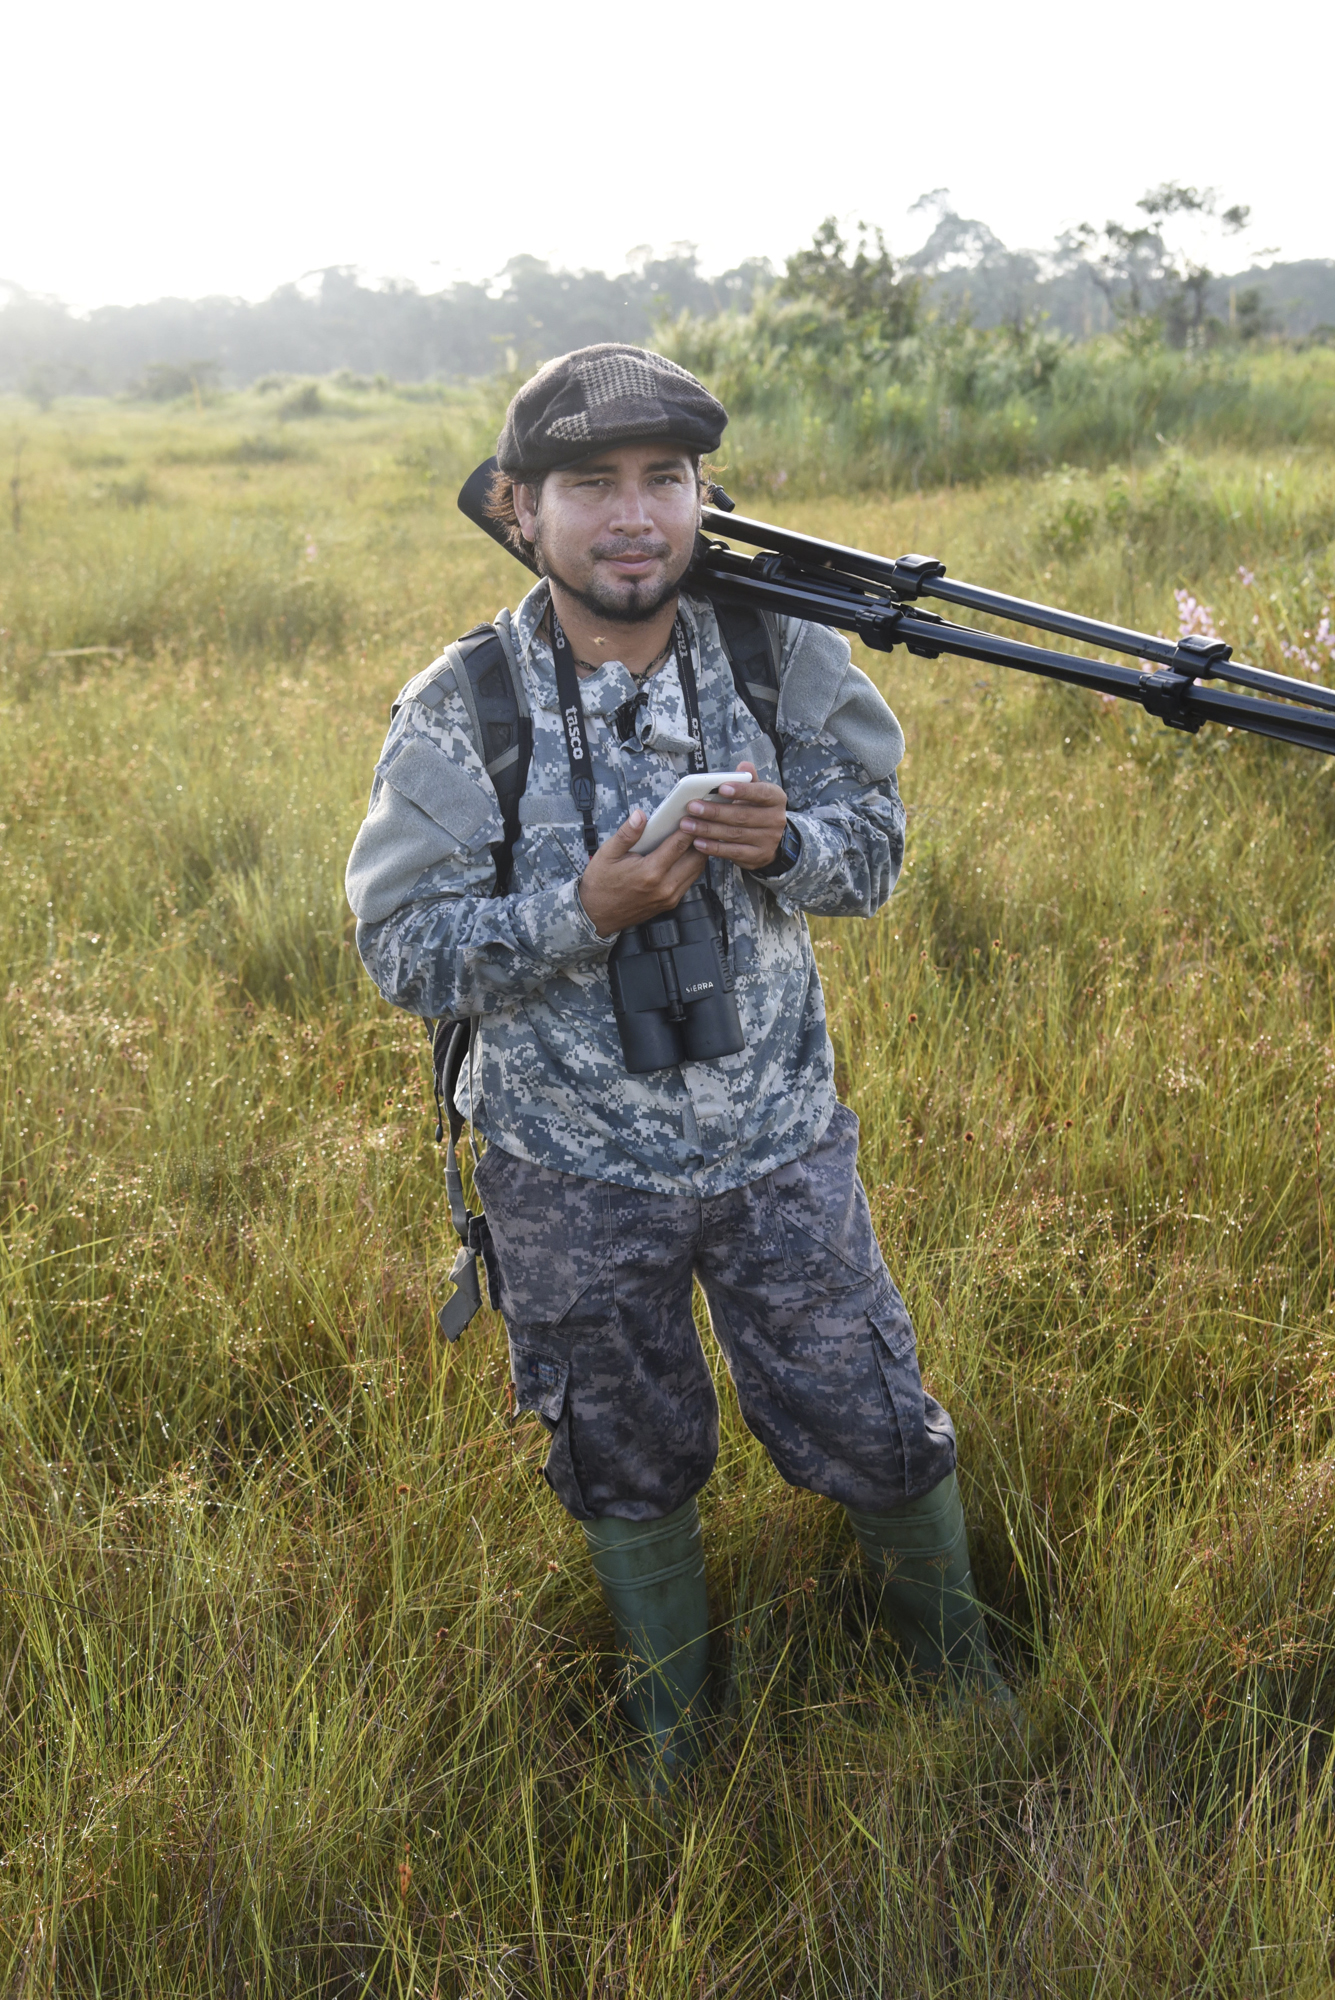 Yohamir Casanaca Leon has previously worked monitoring wildlife in Pampas de Heath, Peru with his non-profit employer, AIDER. He spent his second Global Big Day in the savanna with the aim to contribute endemic species to the world list.